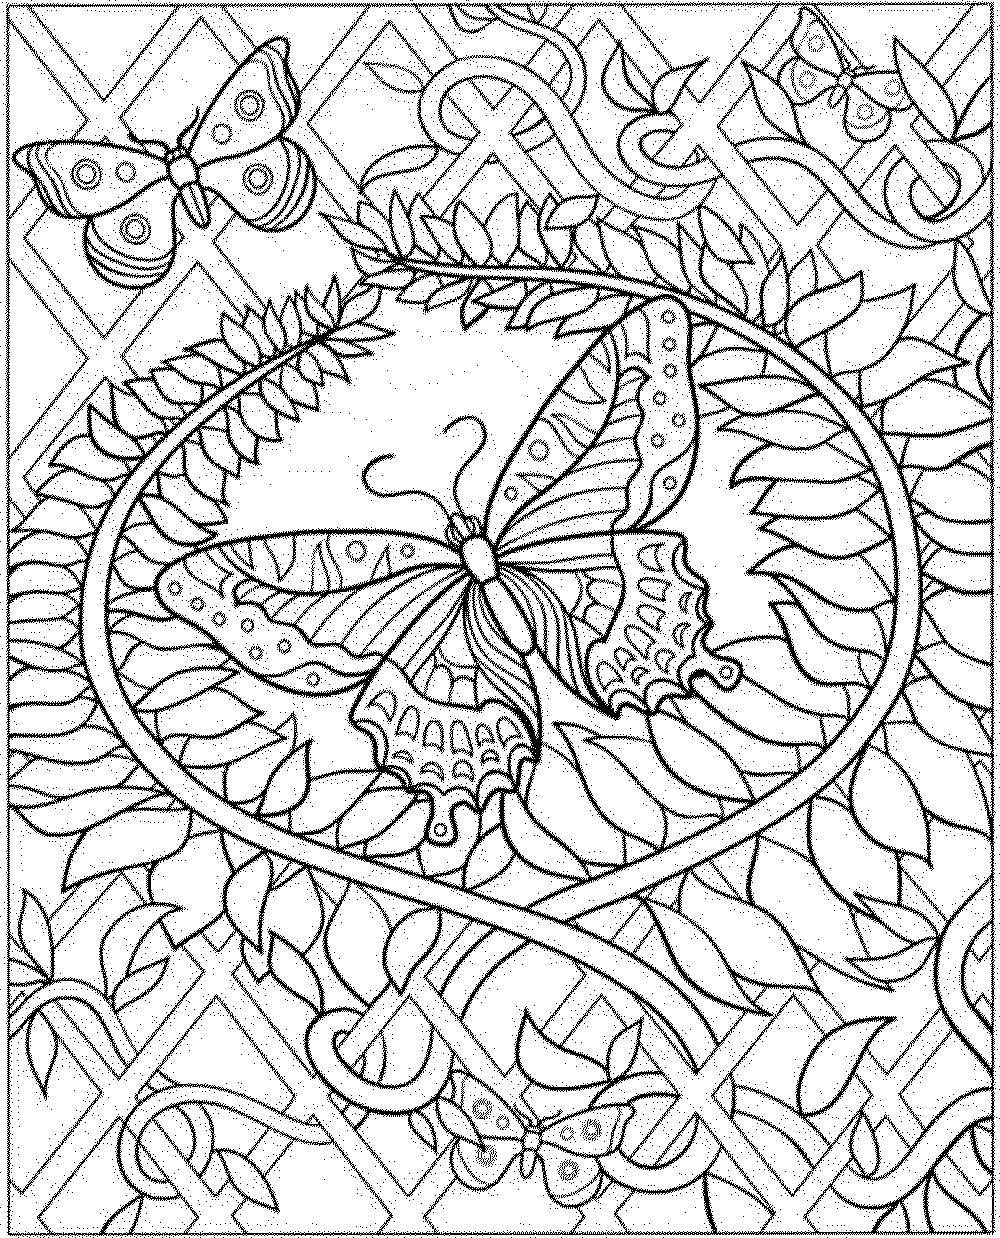 intricate coloring pages for kids intricate coloring pages for adults coloring home coloring kids intricate pages for